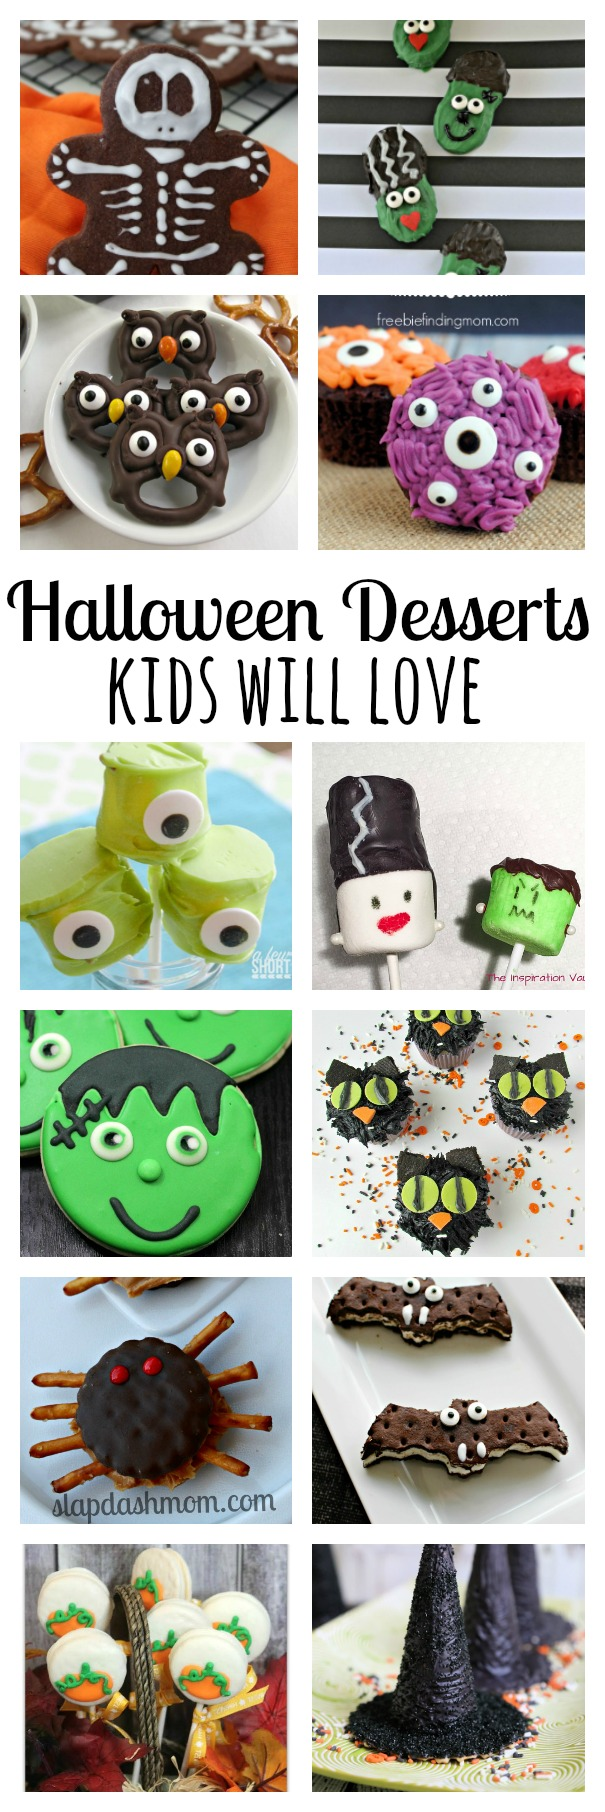 Halloween desserts kids will love